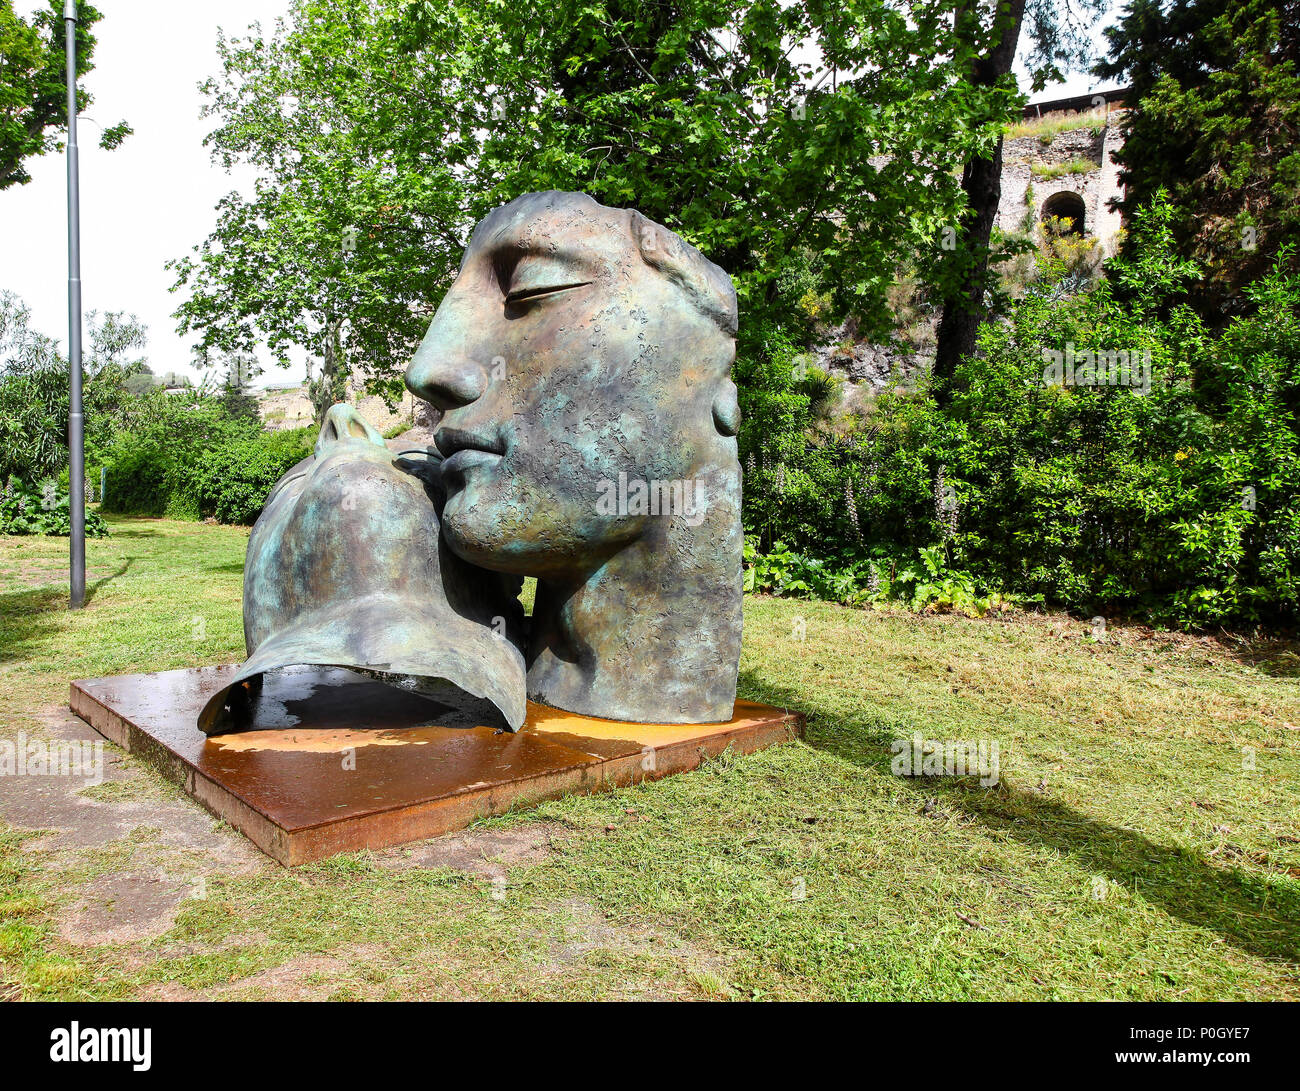 A sculpture of 2 large human heads at the Pompeii Archaeological site, Pompeii, Campania, Italy, - Stock Image